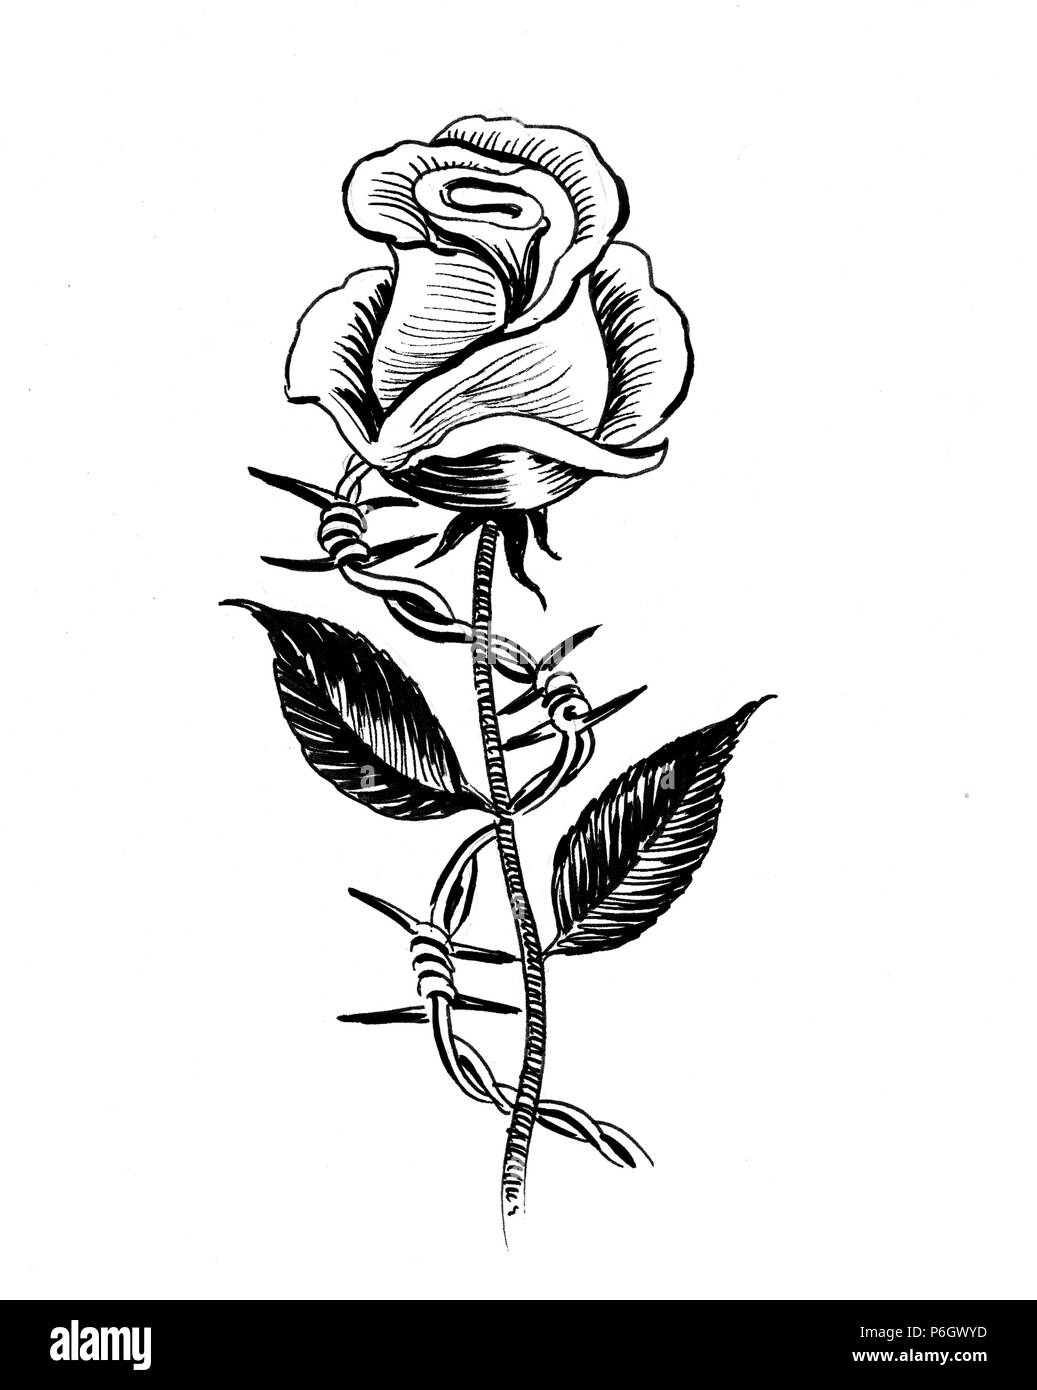 Hand Drawn Rose Flowers Rose Black And White Vector Outline Icon Flower  Logotype Concept Icon Rose Logo Stock Illustration - Download Image Now -  iStock